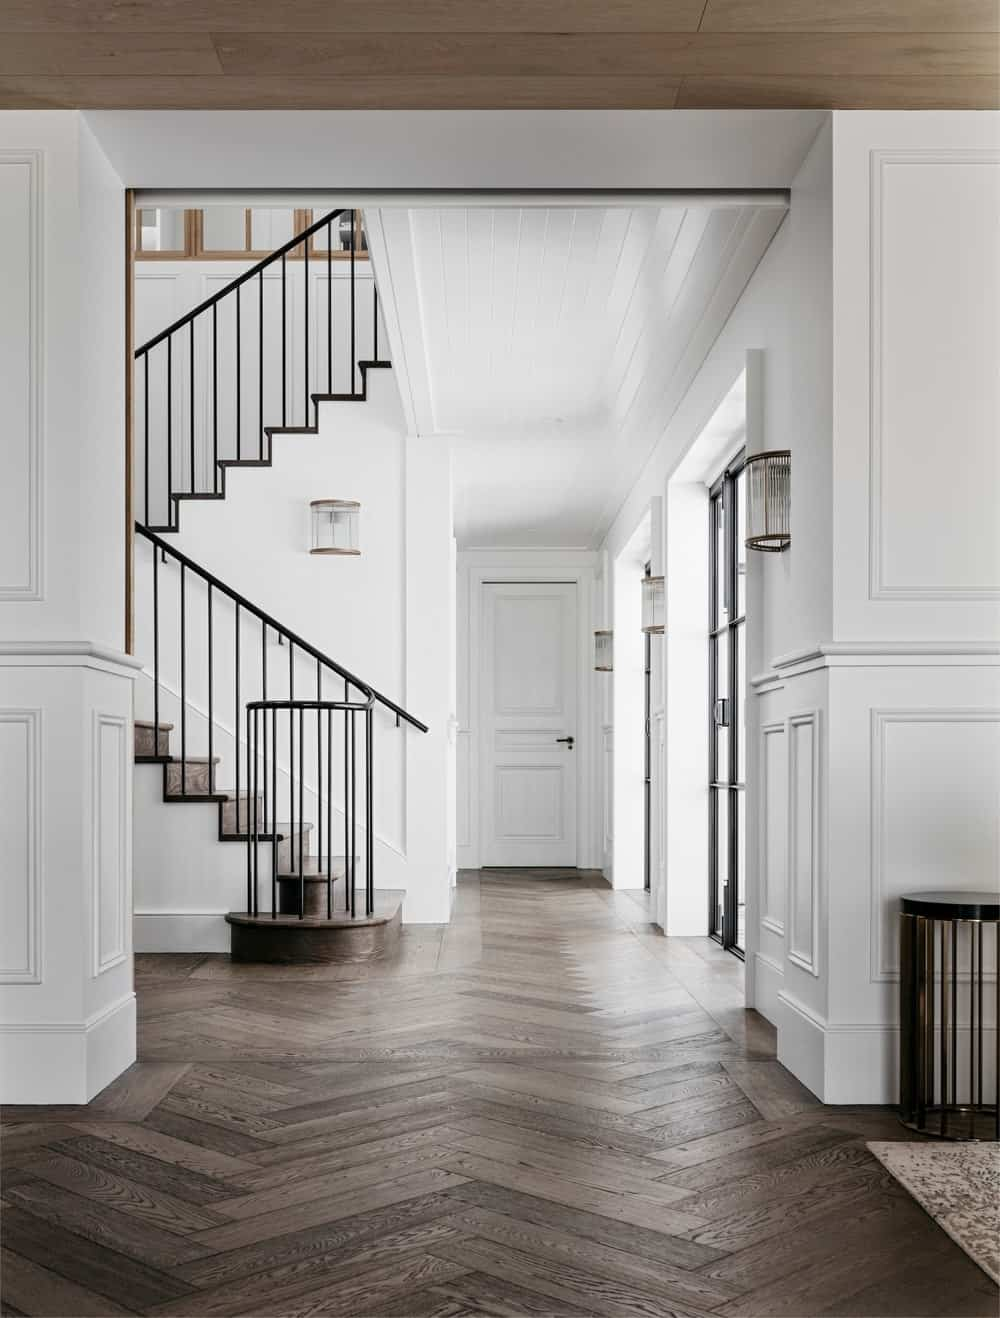 This foyer boasts a hardwood flooring and staircase steps, along with white walls and iron staircase railings.